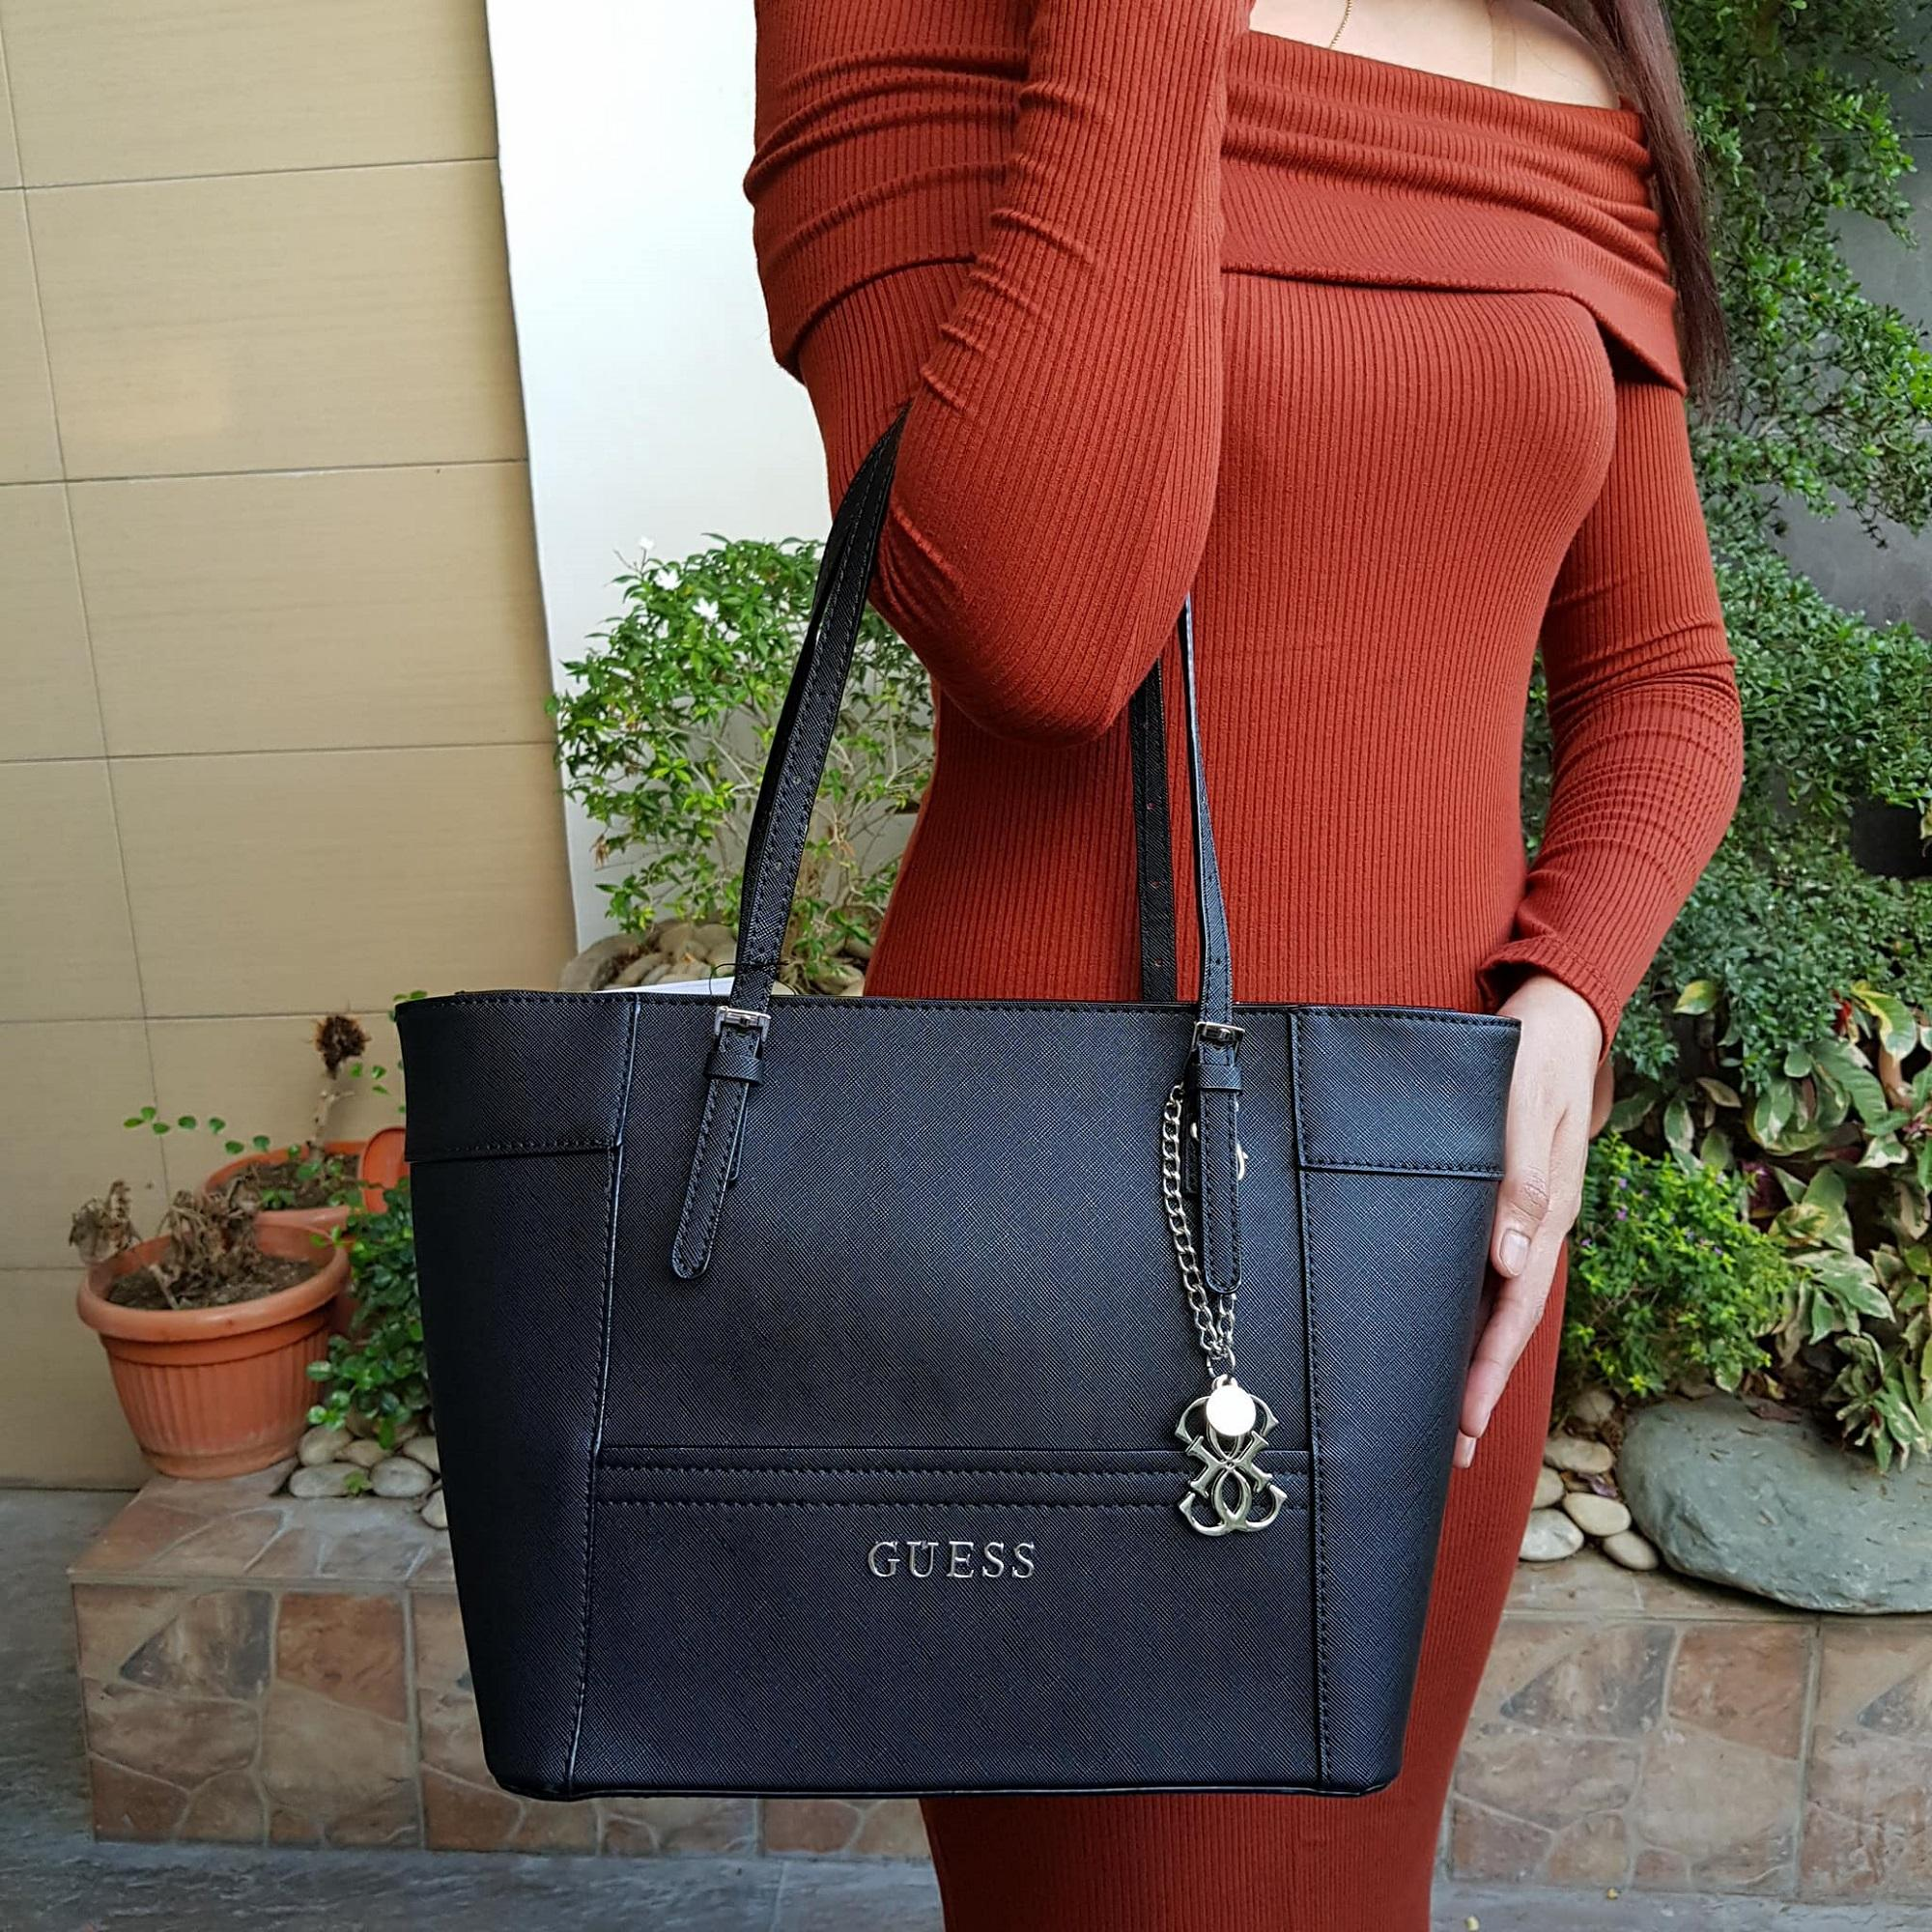 b124e47b7a8b Guess Bags for Women Philippines - Guess Womens Bags for sale ...